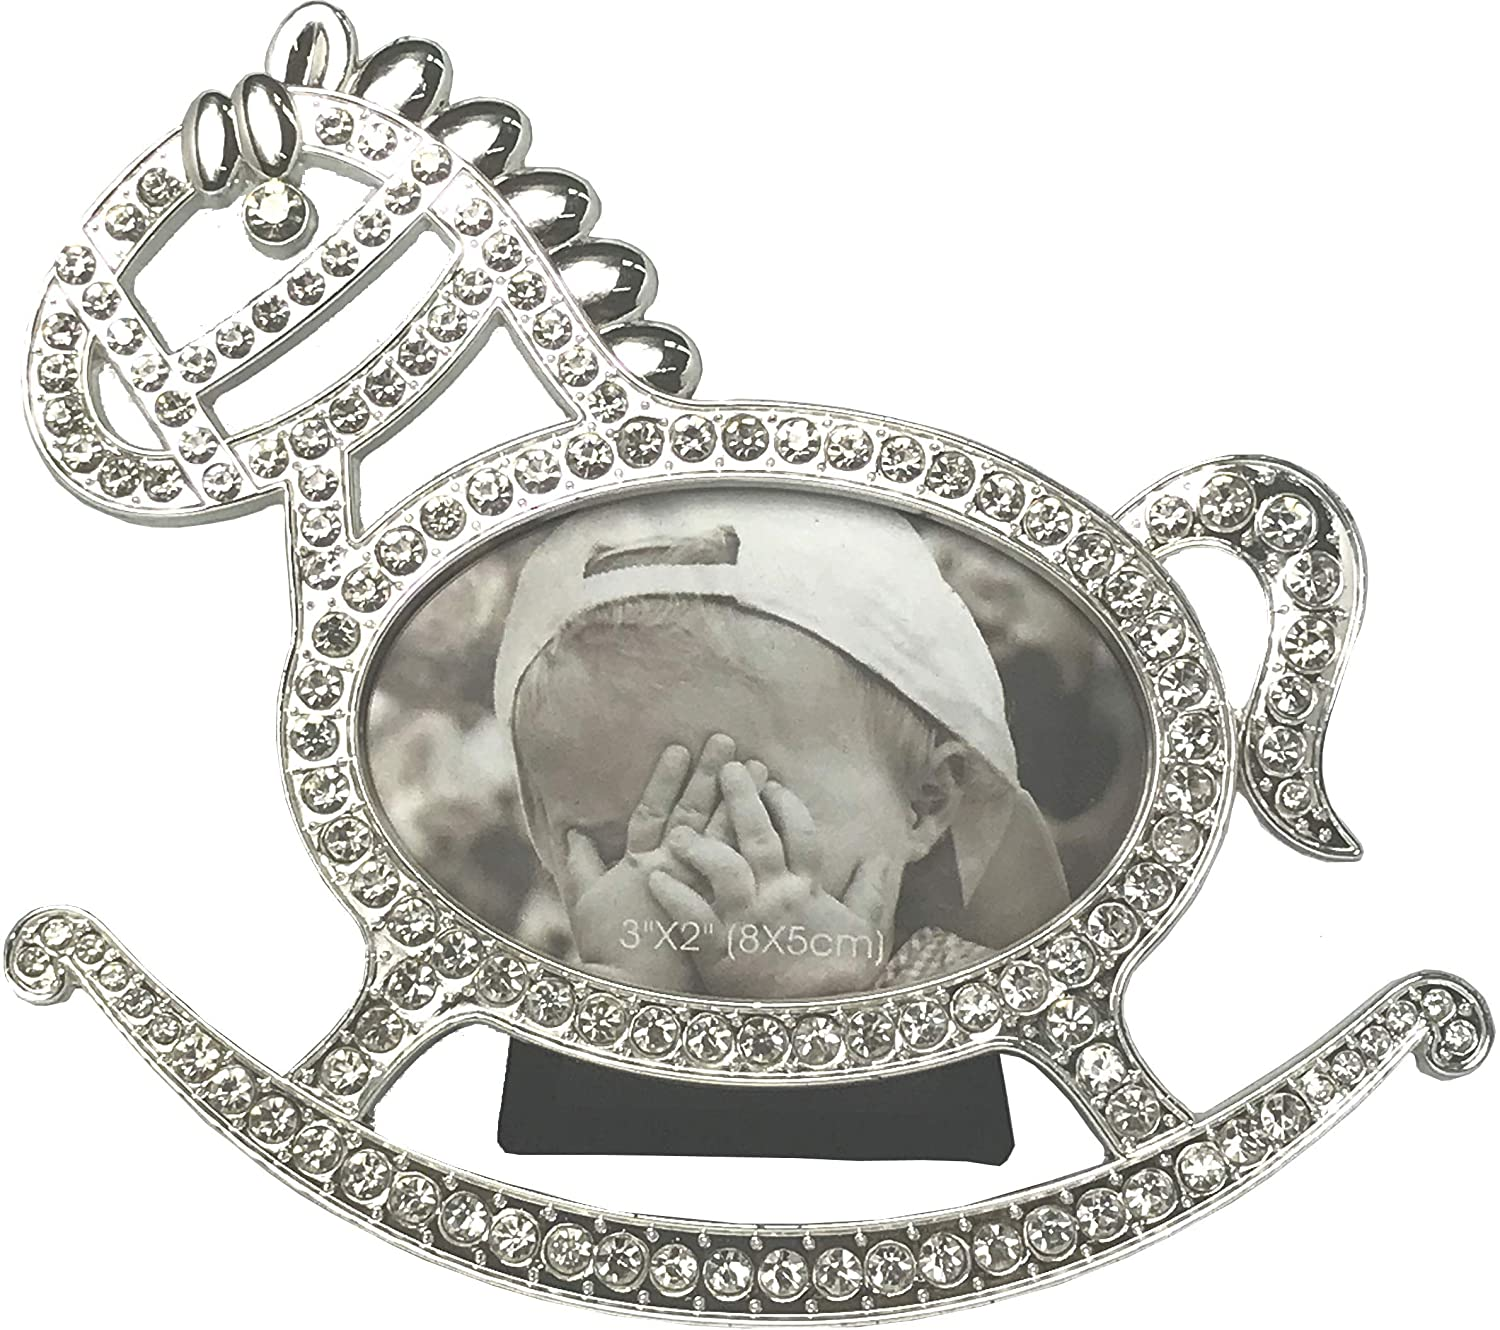 VI N VI Rocking Horse Baby 3 x 2 Picture Frame with Silver Rhinestones Frames for Young Children Babies and Newborns